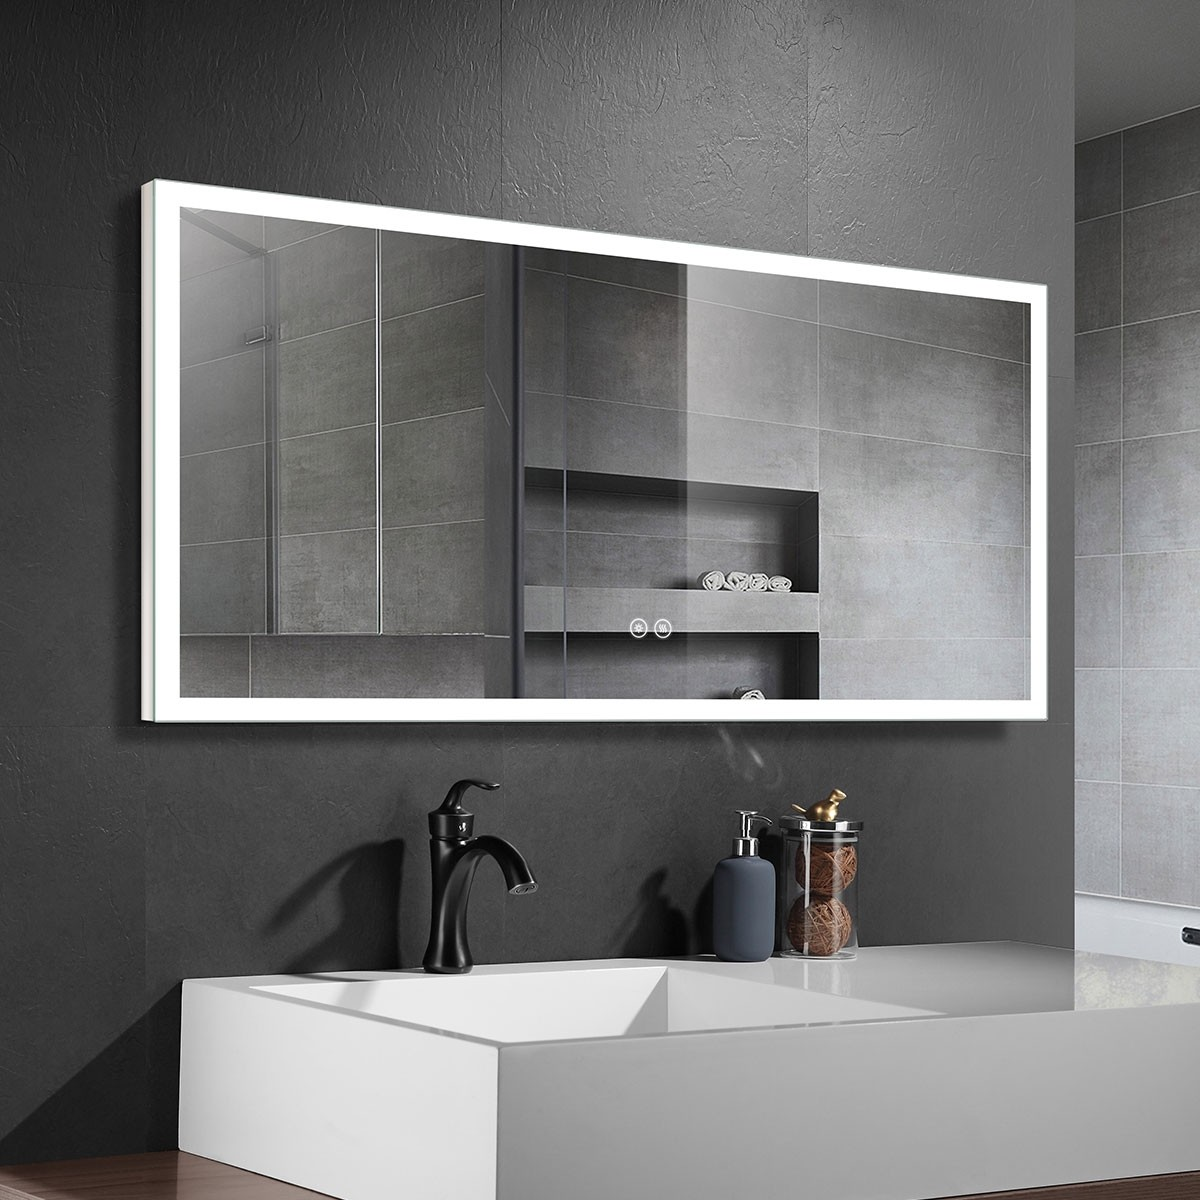 DECORAPORT 55 x 28 Inch LED Bathroom Mirror with Touch Button, Anti Fog, Dimmable,  Bluetooth Speakers, Vertical & Horizontal Mount (NT061-5528)